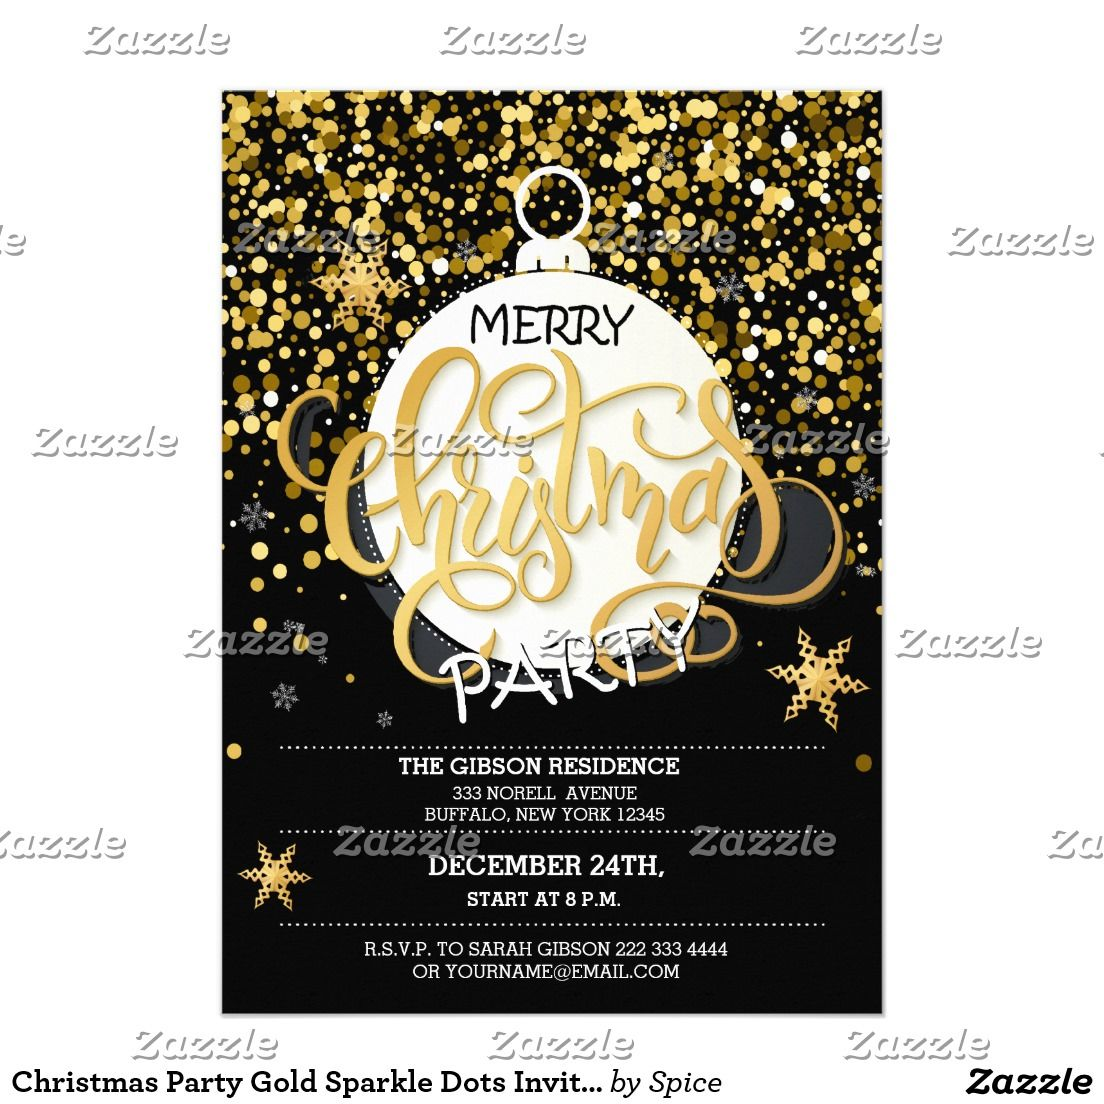 Christmas Party Gold Sparkle Dots Invitations | Corporate,Office ...